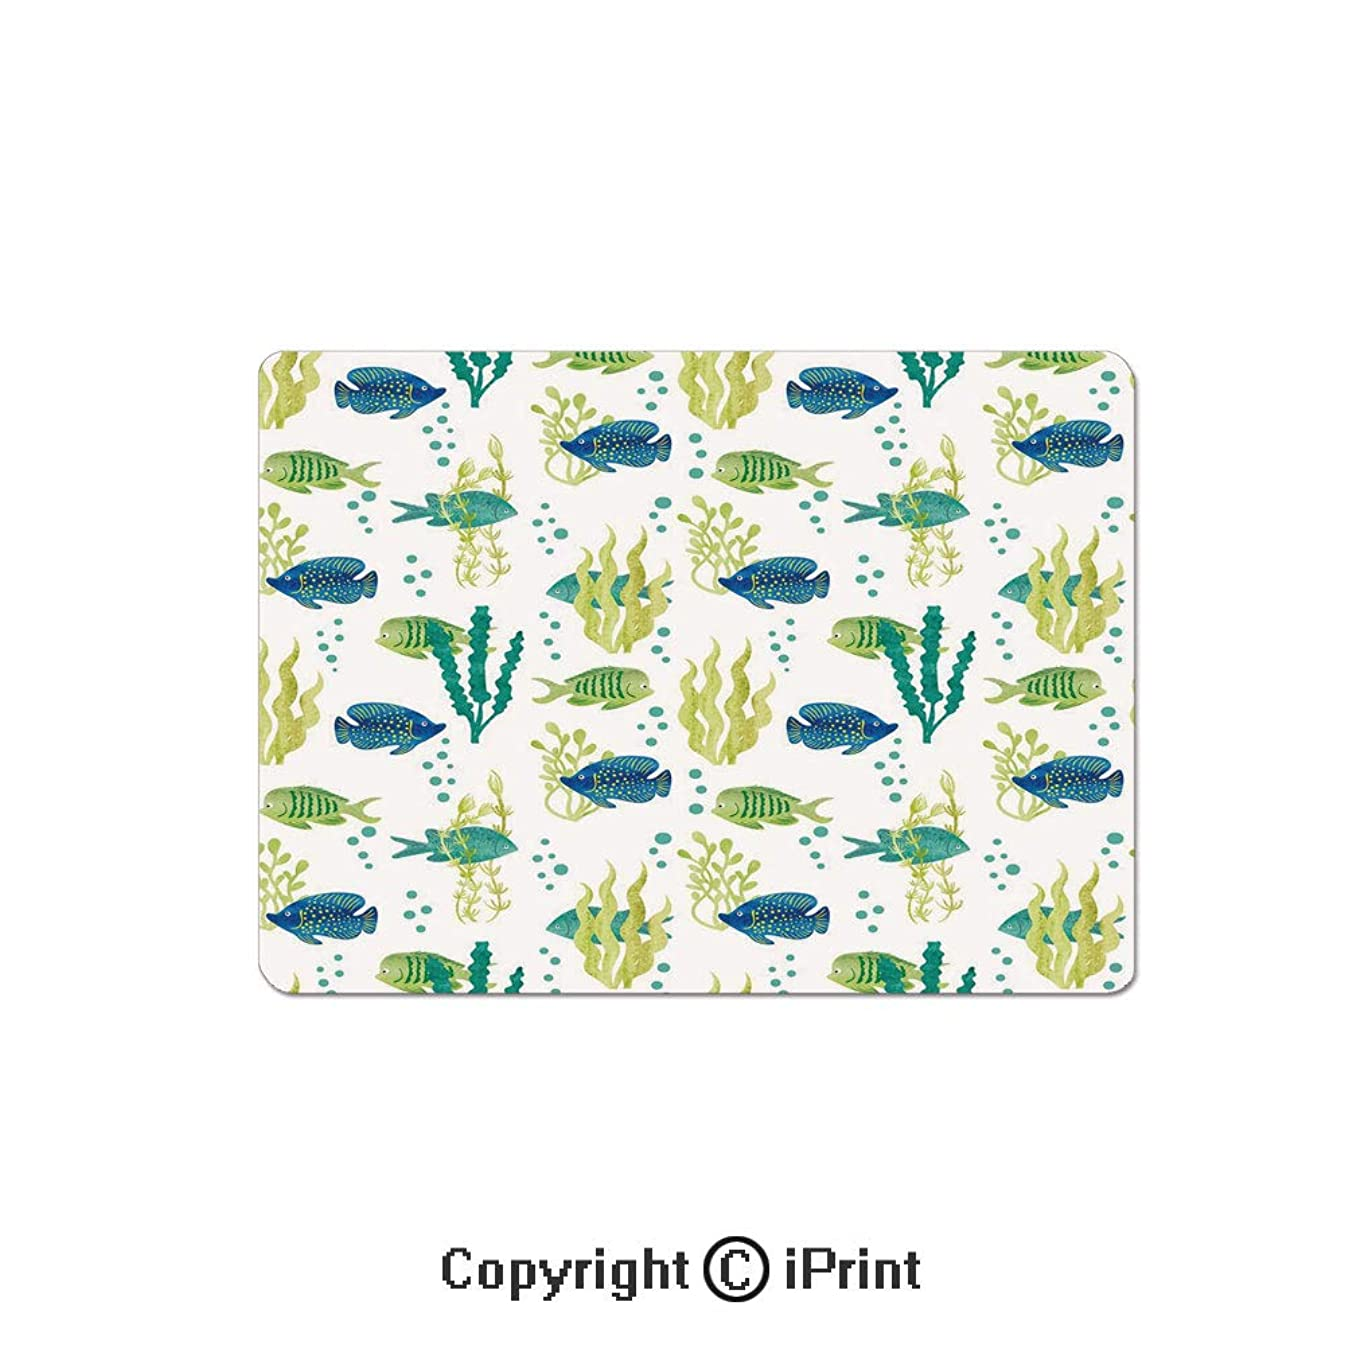 Gaming Mouse Pads, Different Tropical Fish and Seaweeds Exotic Marine Watercolor Artwork Decorative Non Slip Rubber Mousepad,7.1x8.7 inch,Avocado Green Teal Blue